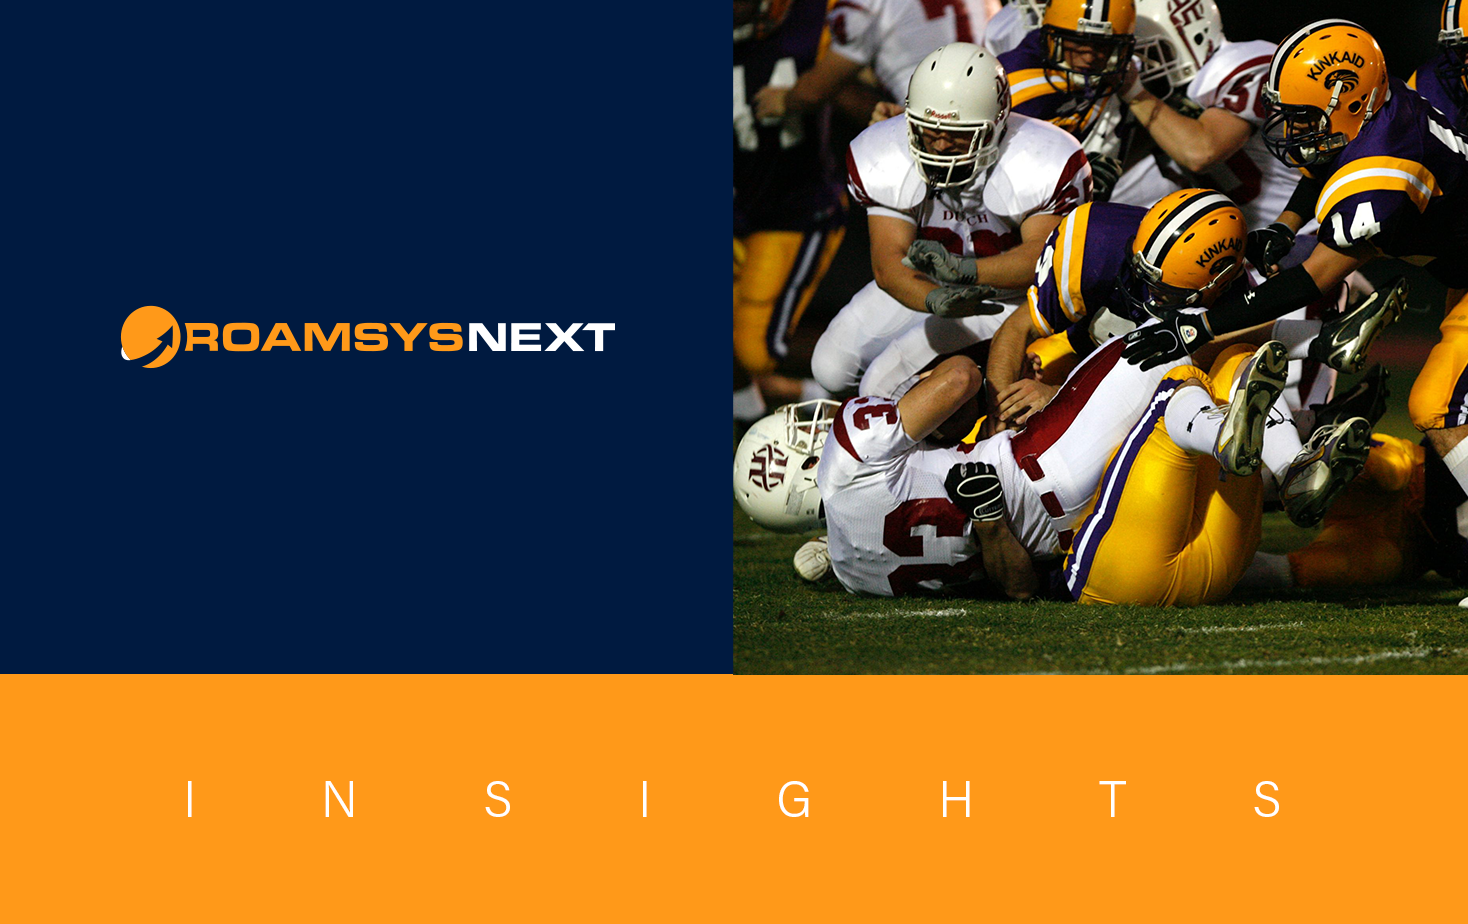 RoamsysNext Insights 22